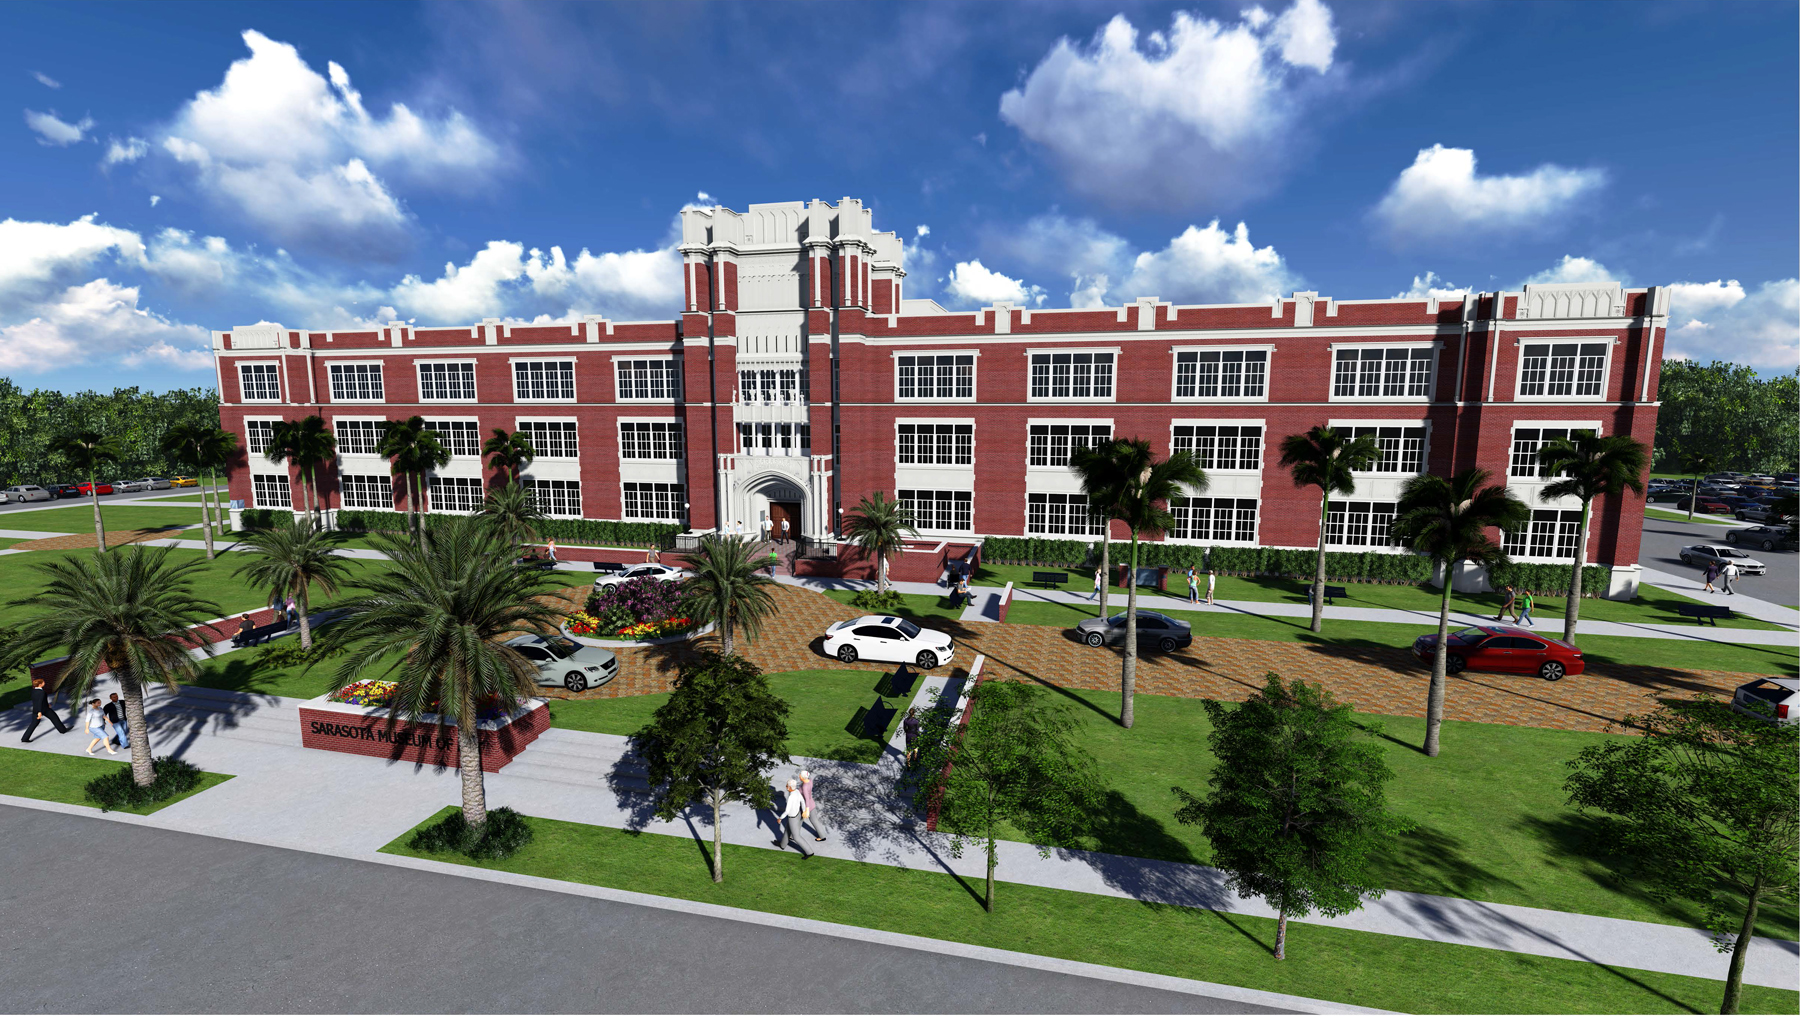 ringling college sarasota museum front smoa academy russell anne executive director marie arts architectural prweb rendering national major announces